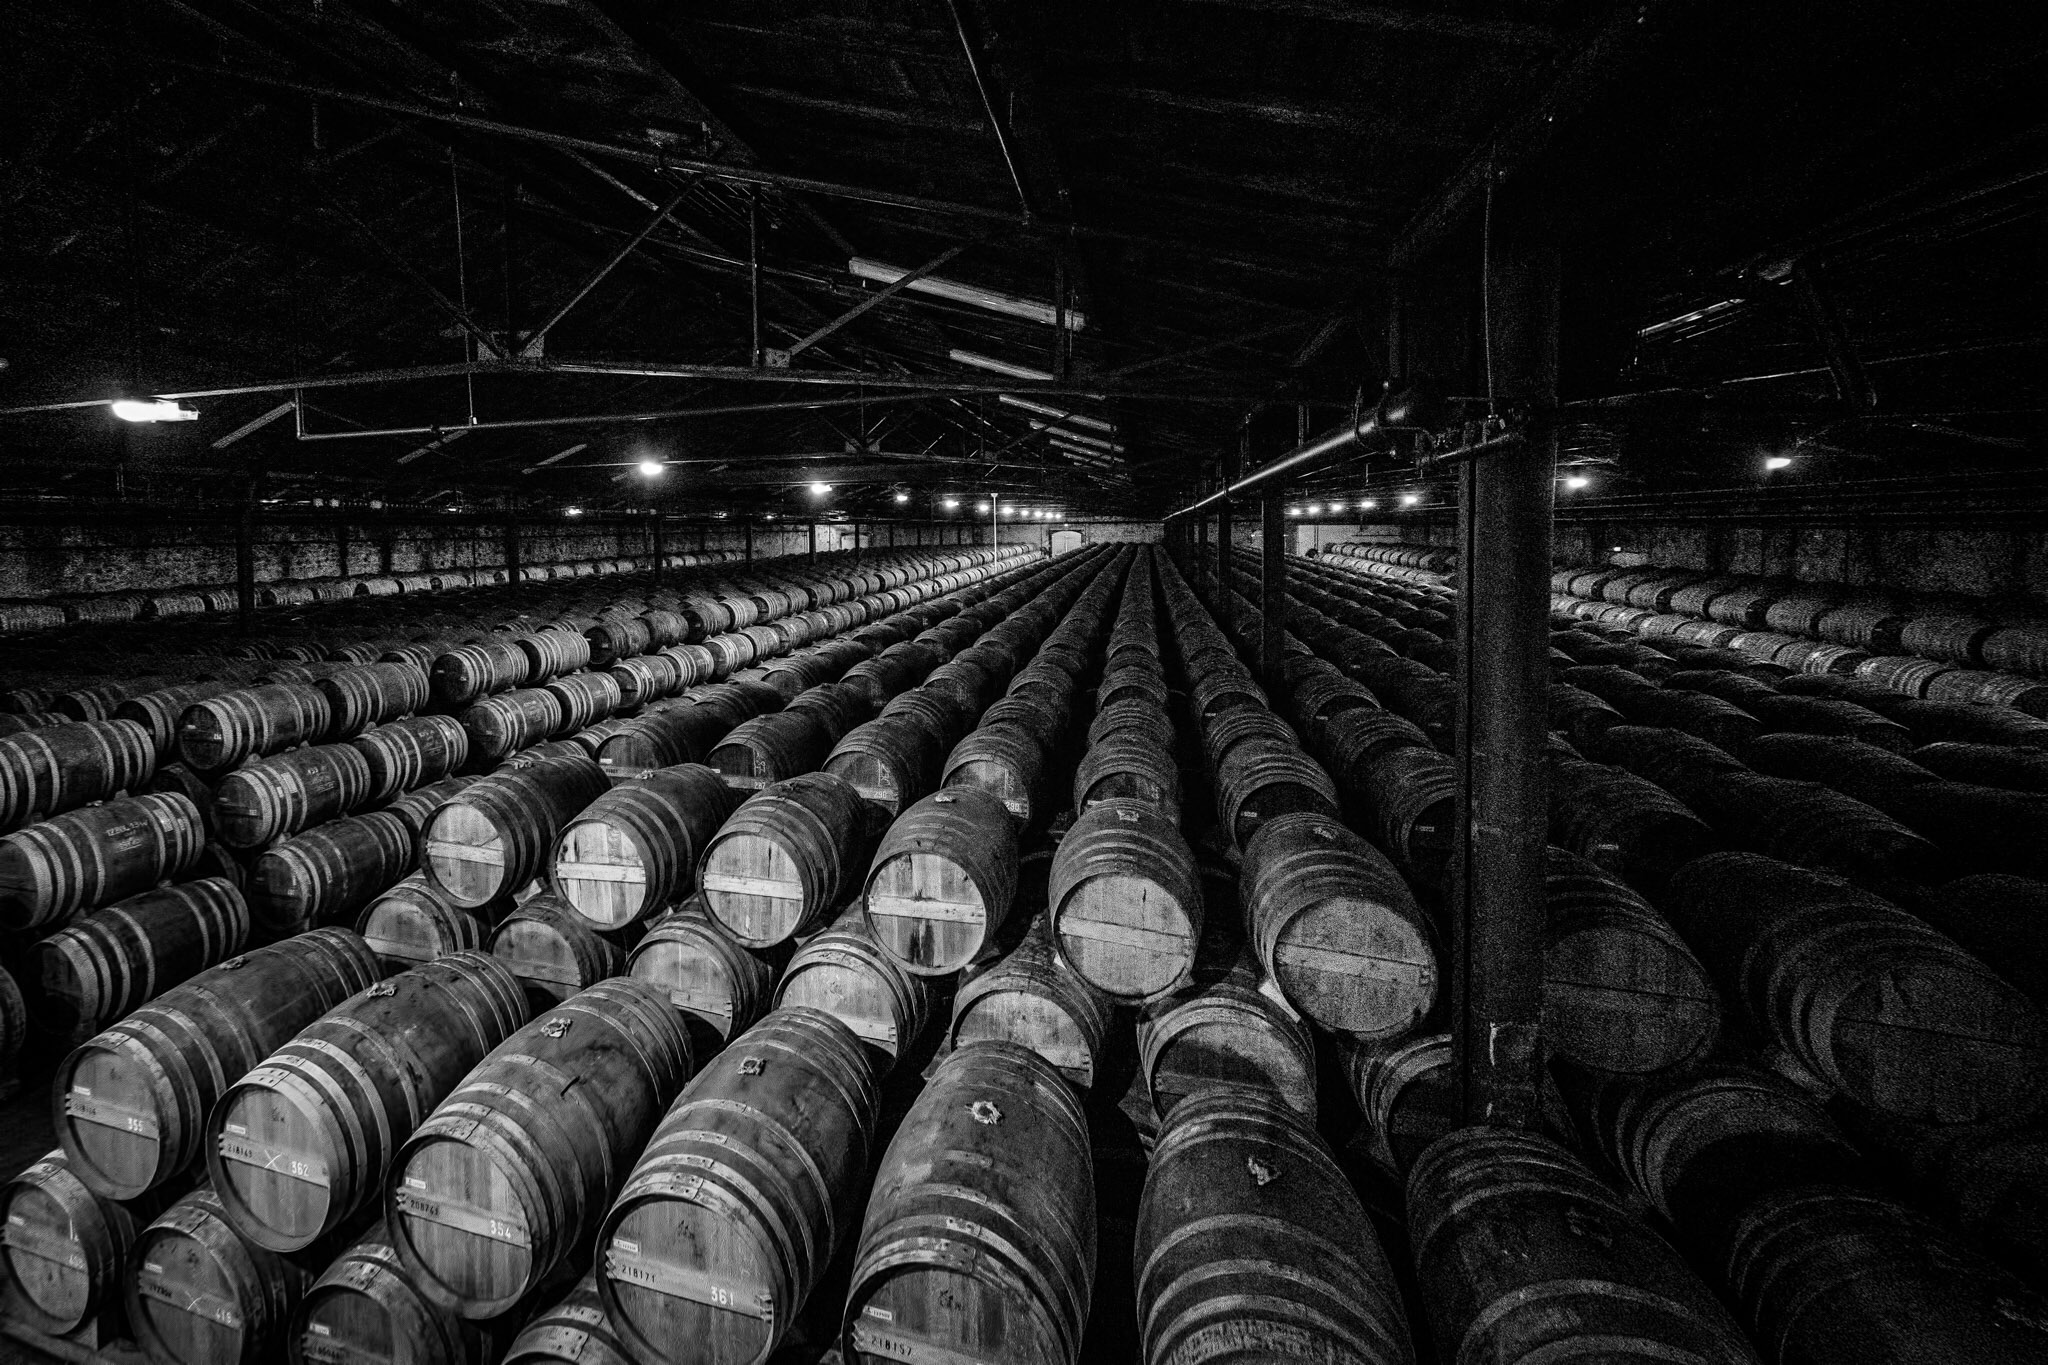 Barrels, Remy Martin, Cognac, France. In case you didn't know which country Cognac was in?